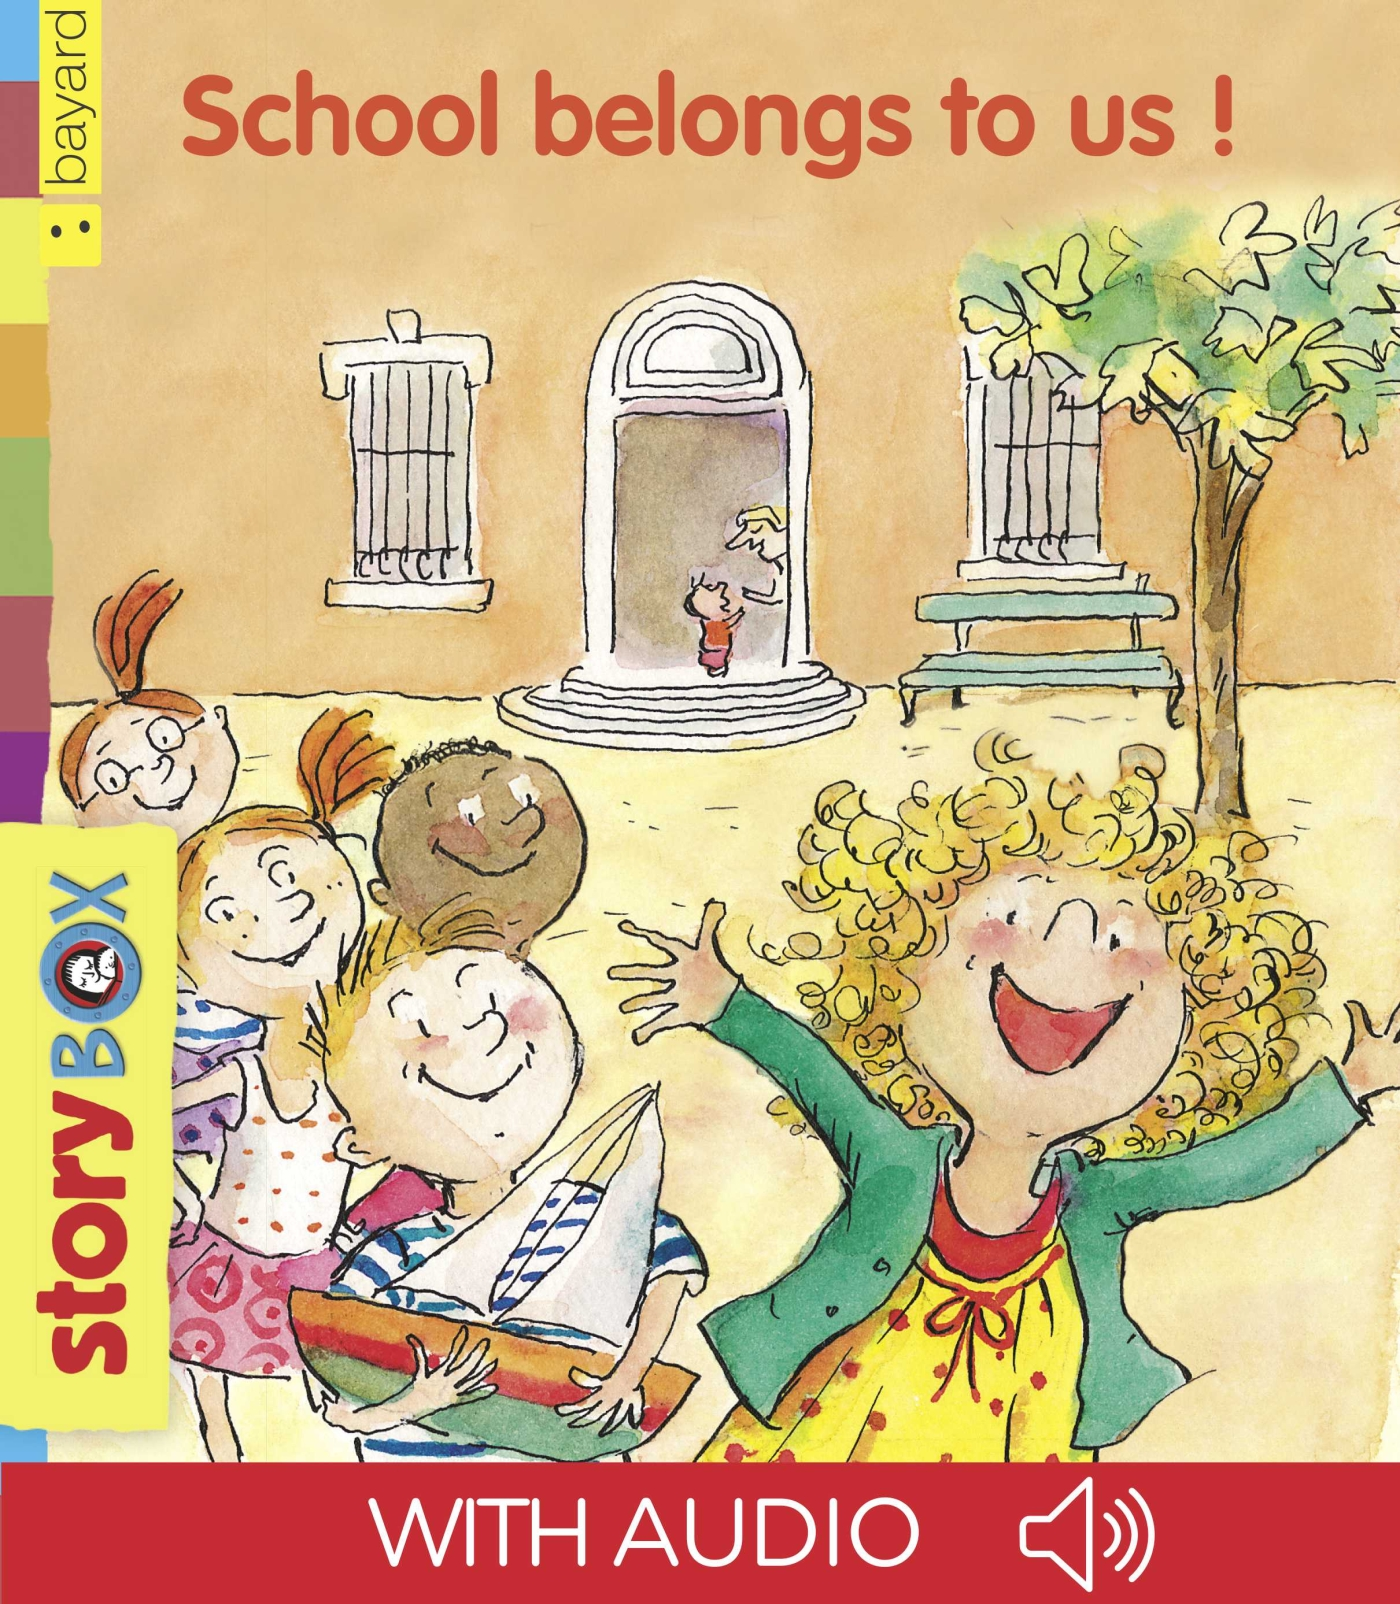 School belongs to us!